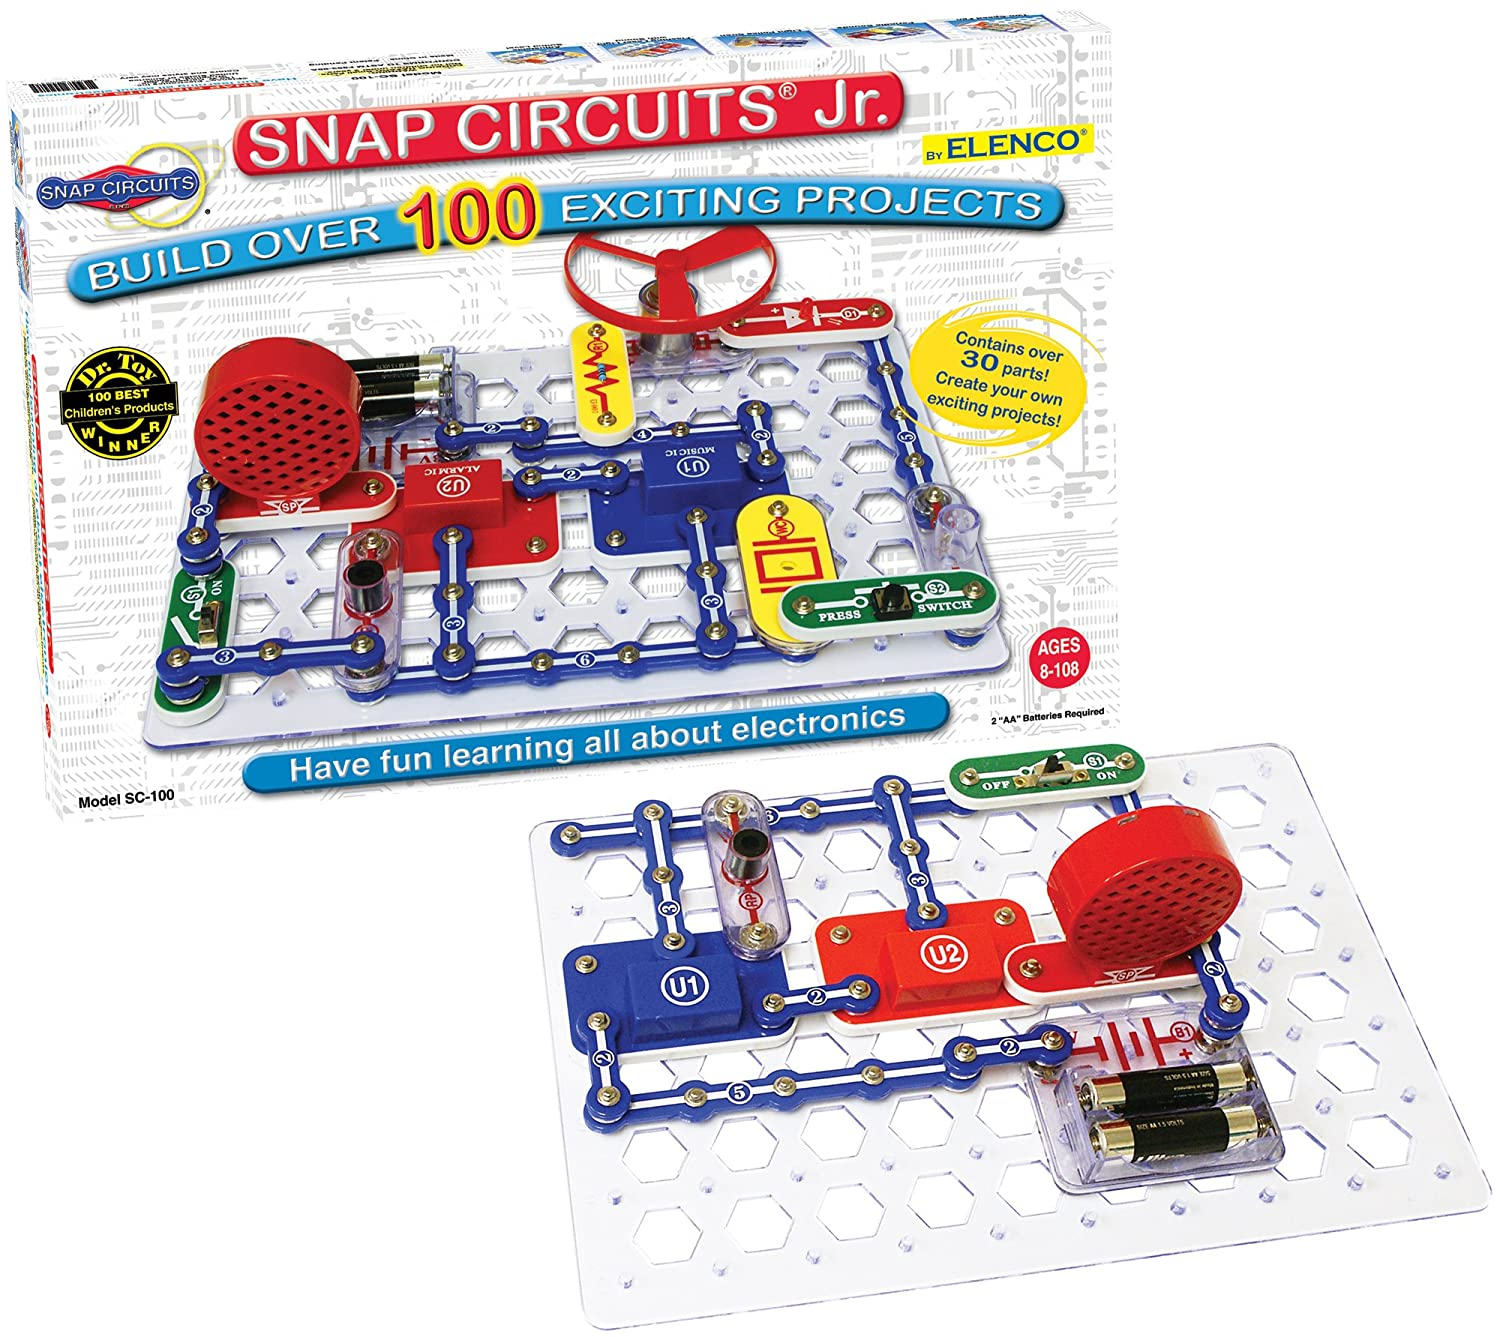 Snap Circuits Jr SC 100 Amazon Toys & Games